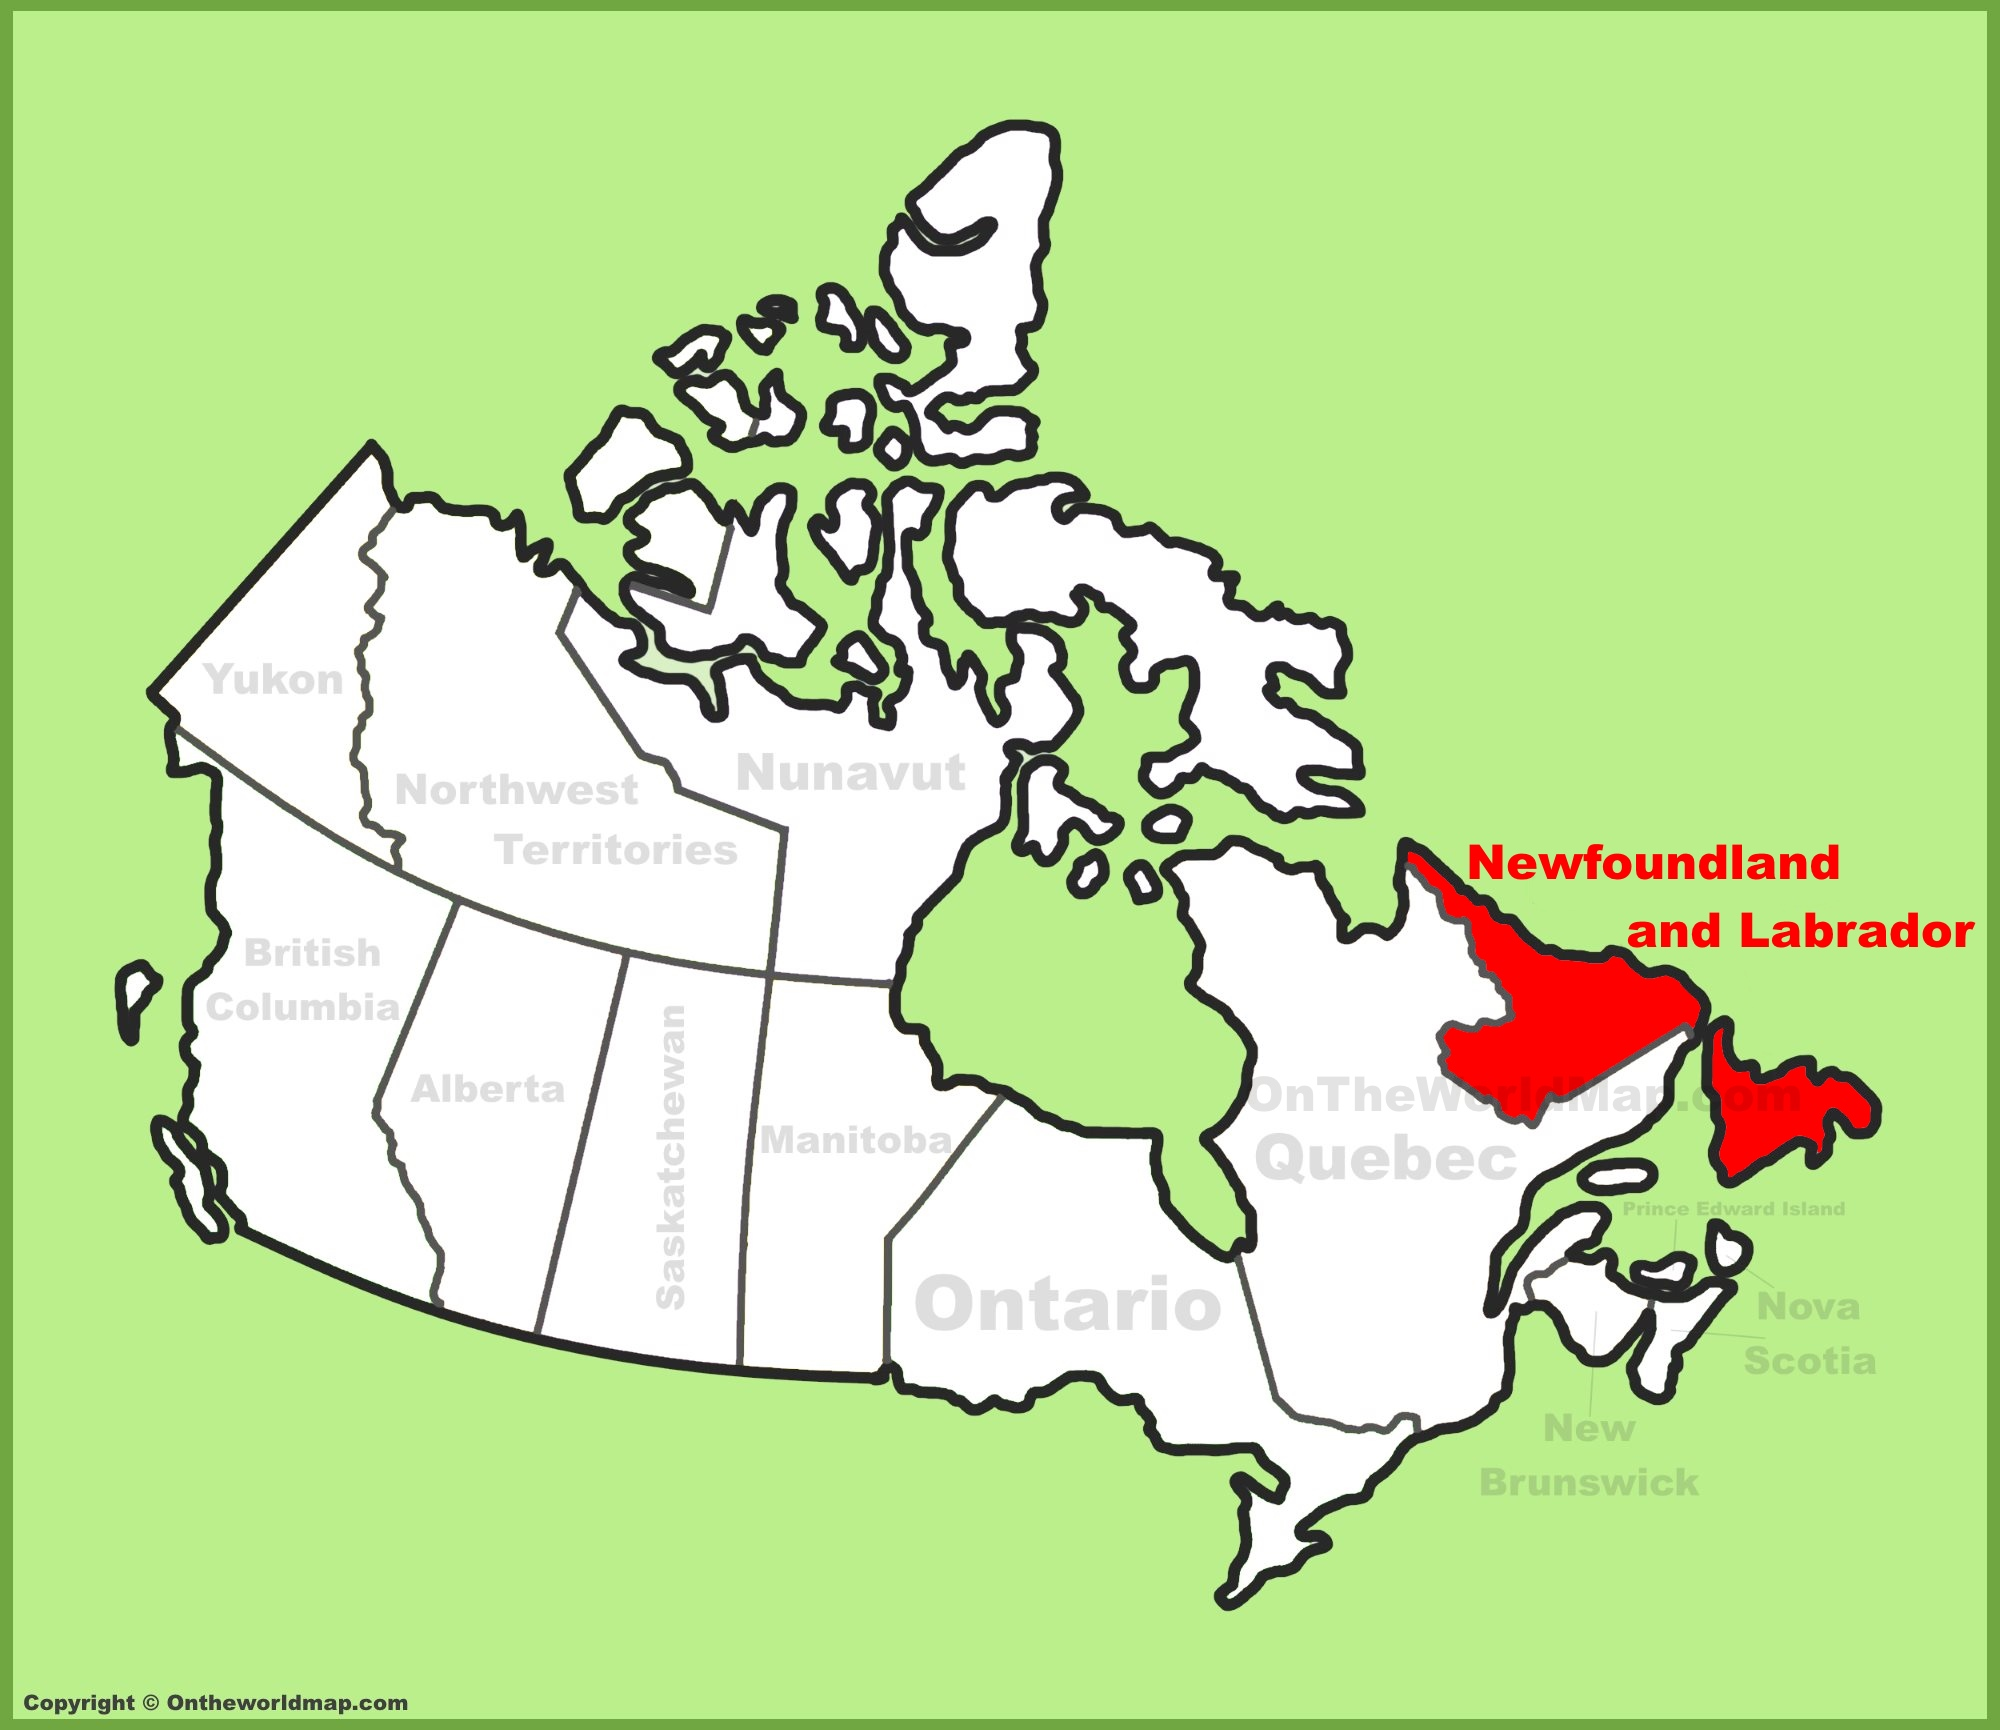 Newfoundland and Labrador Province Maps Canada Maps of